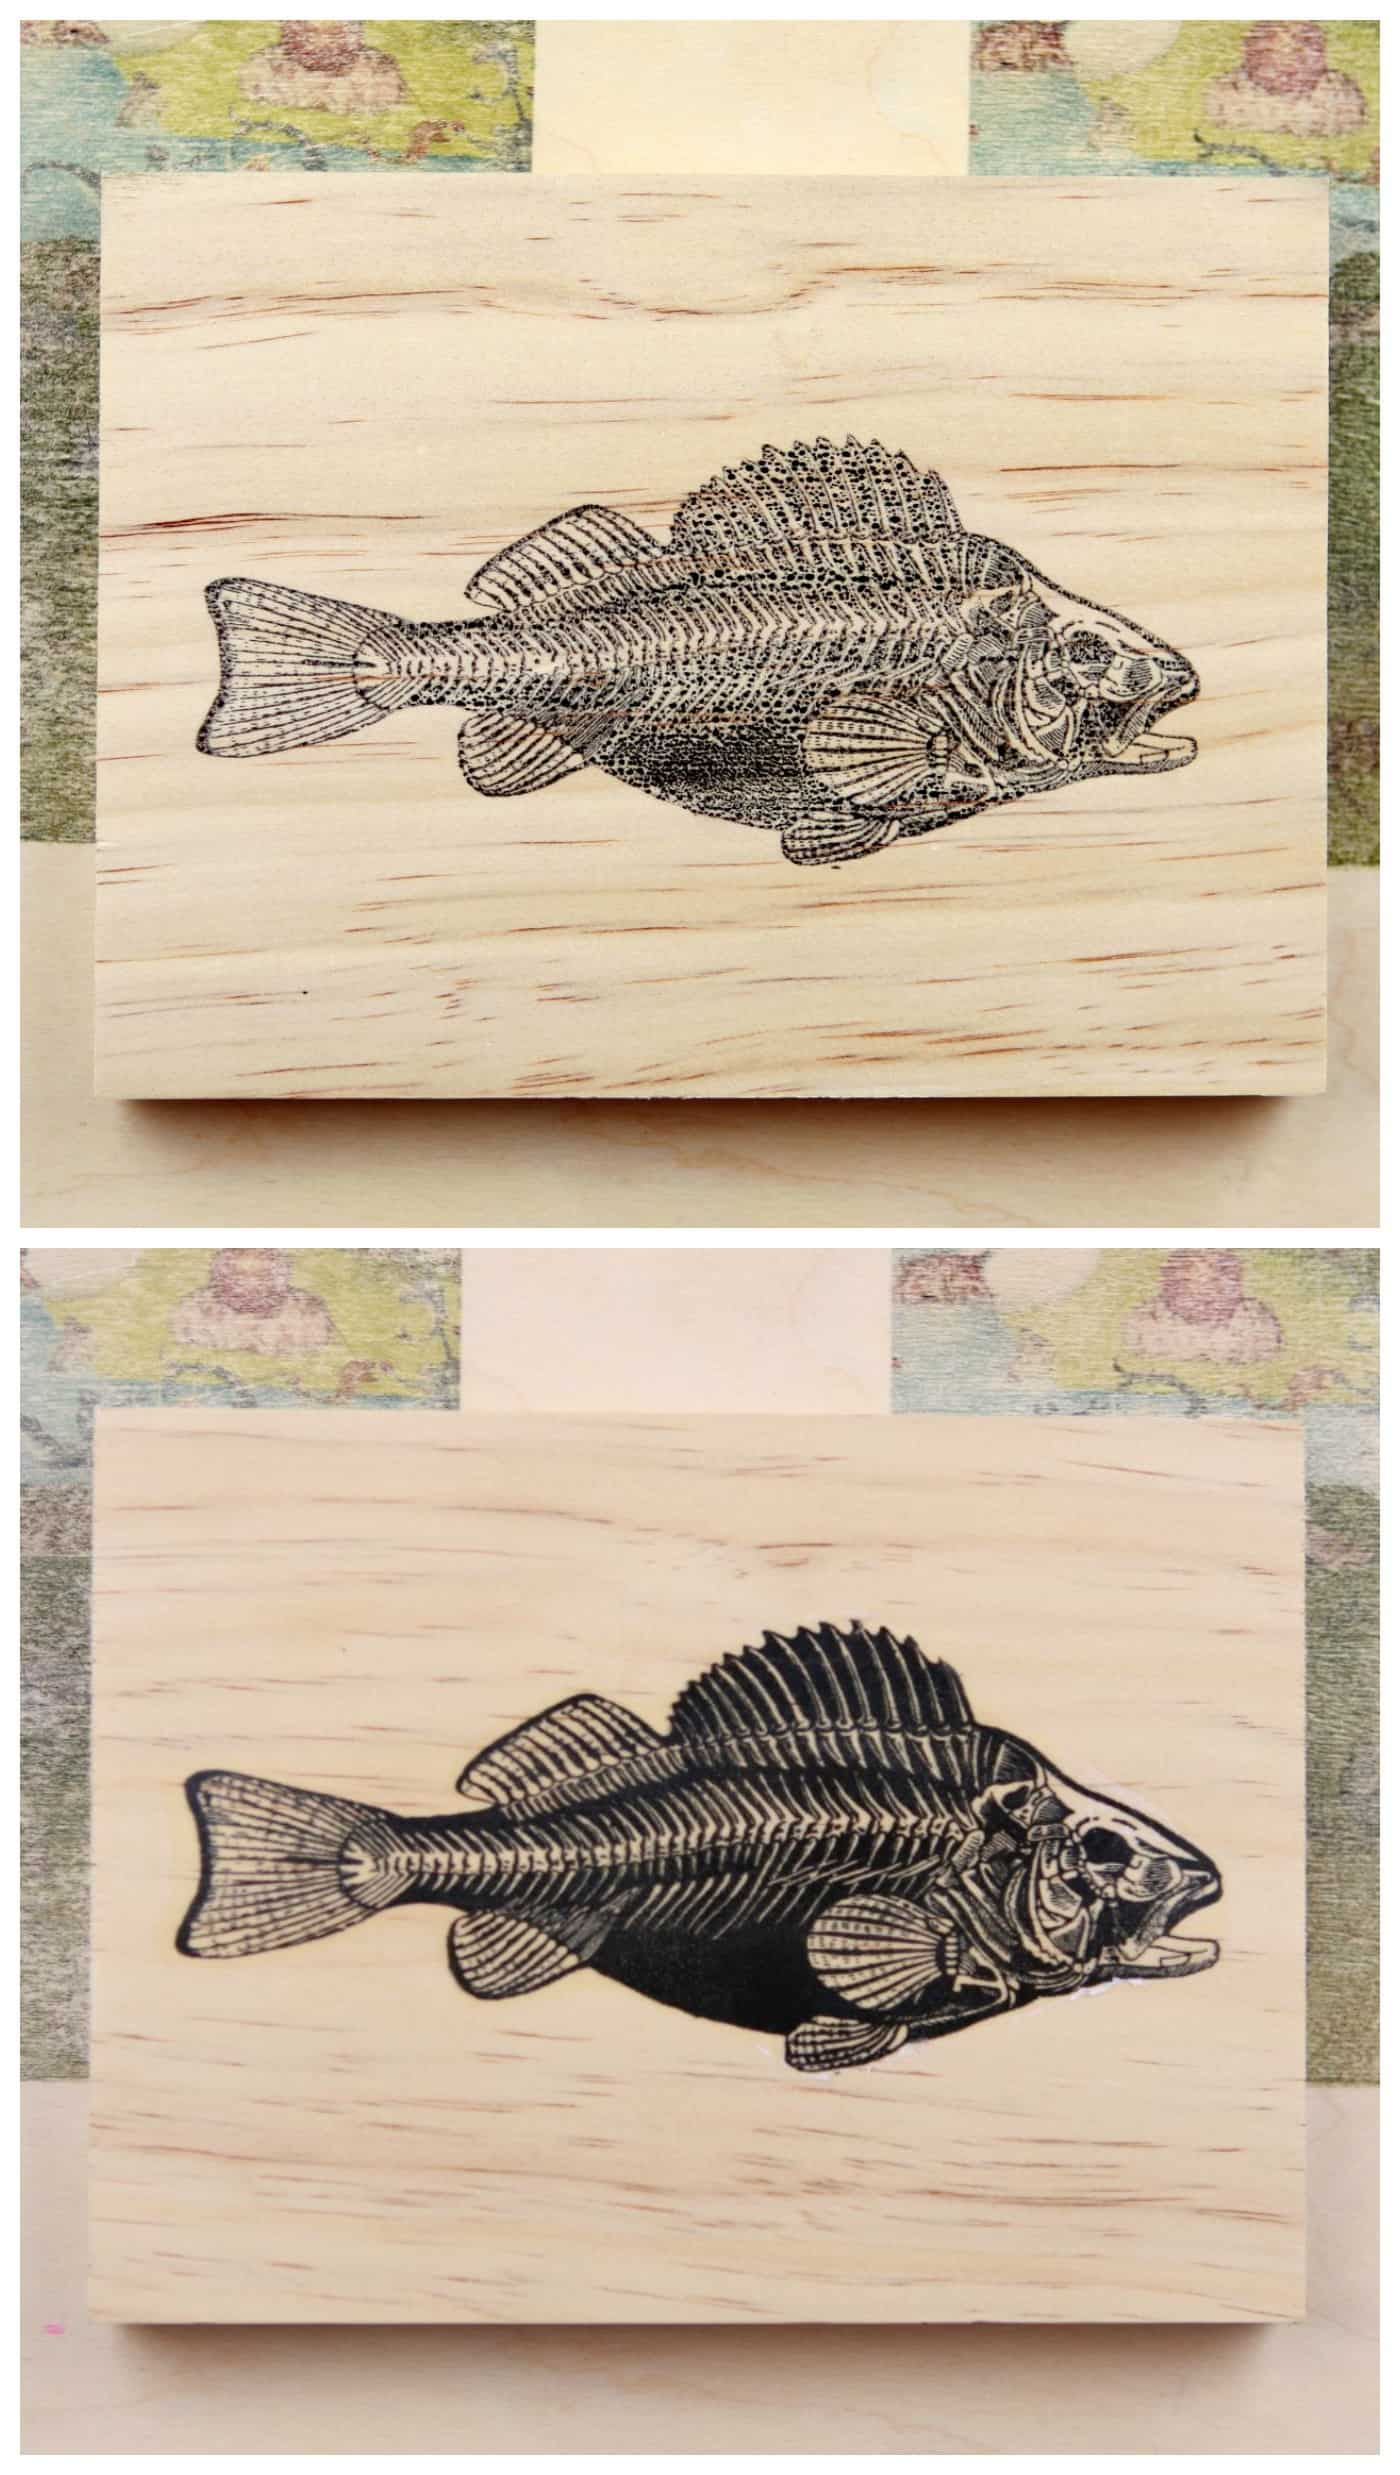 fish printed onto wood using print transfer techniques